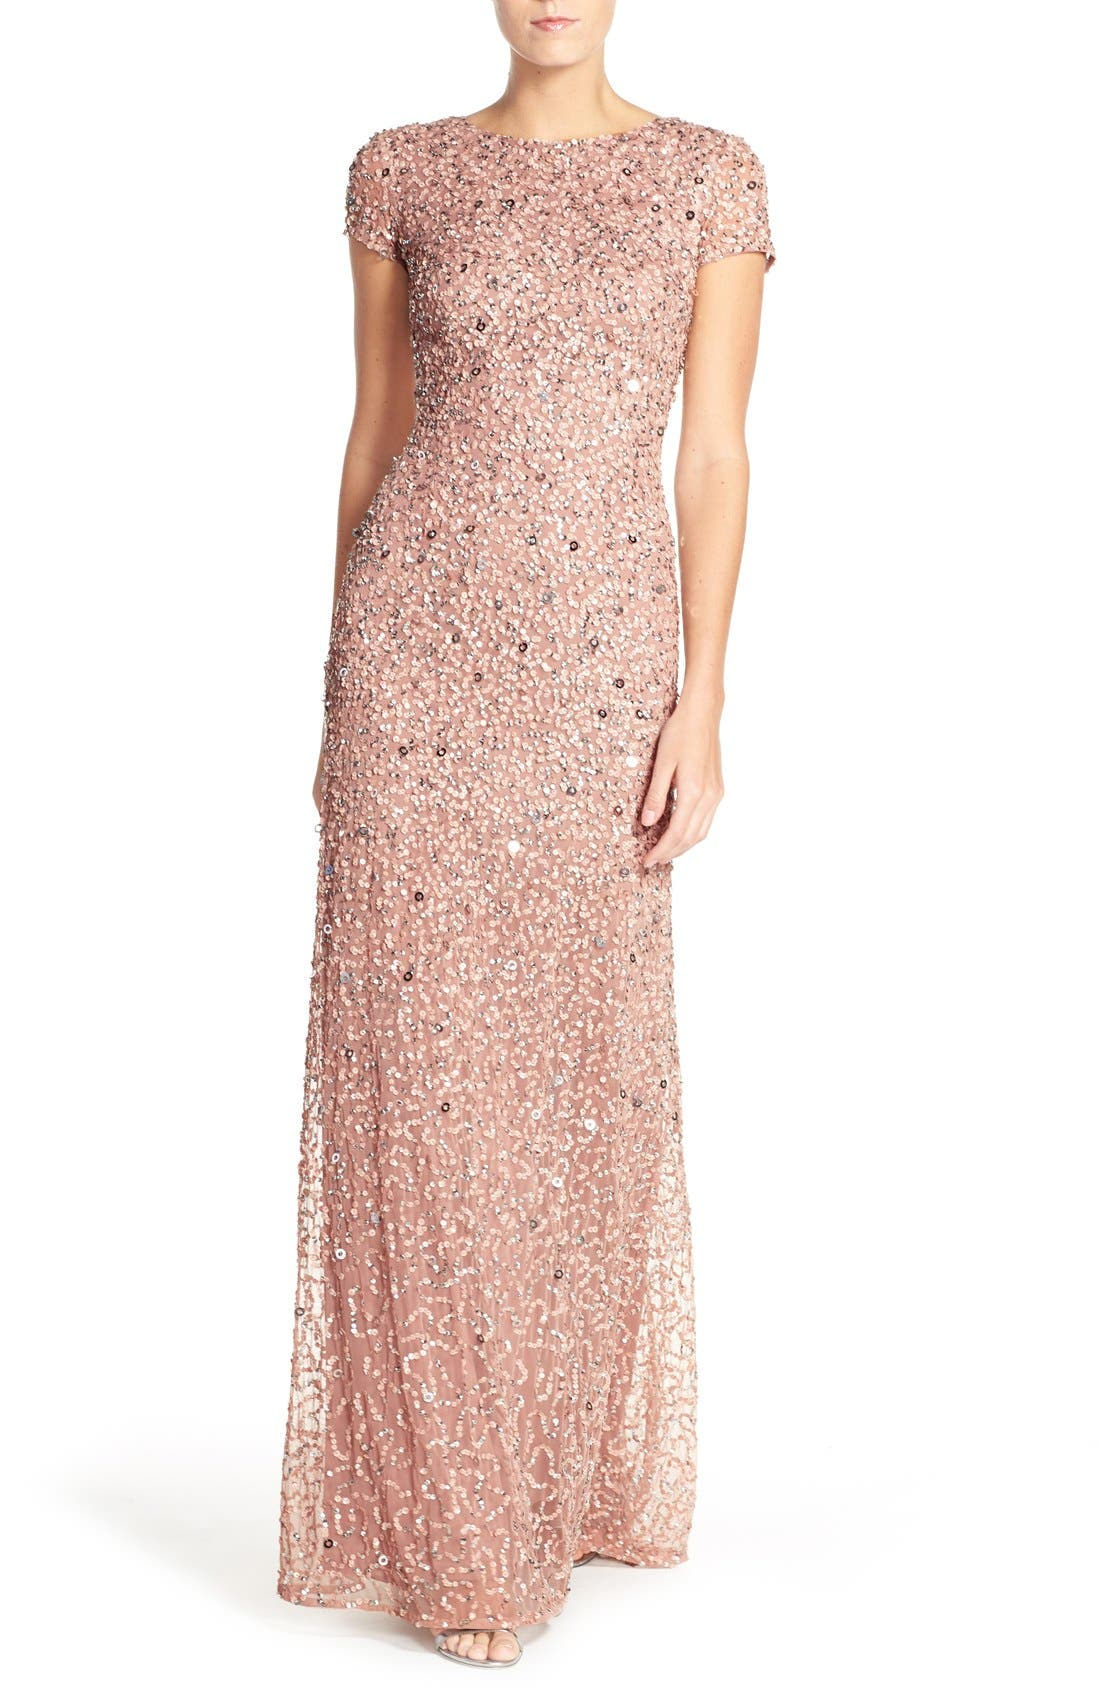 Adrianna Papell Short Sleeve Sequin Mesh Gown (Regular & Petite)